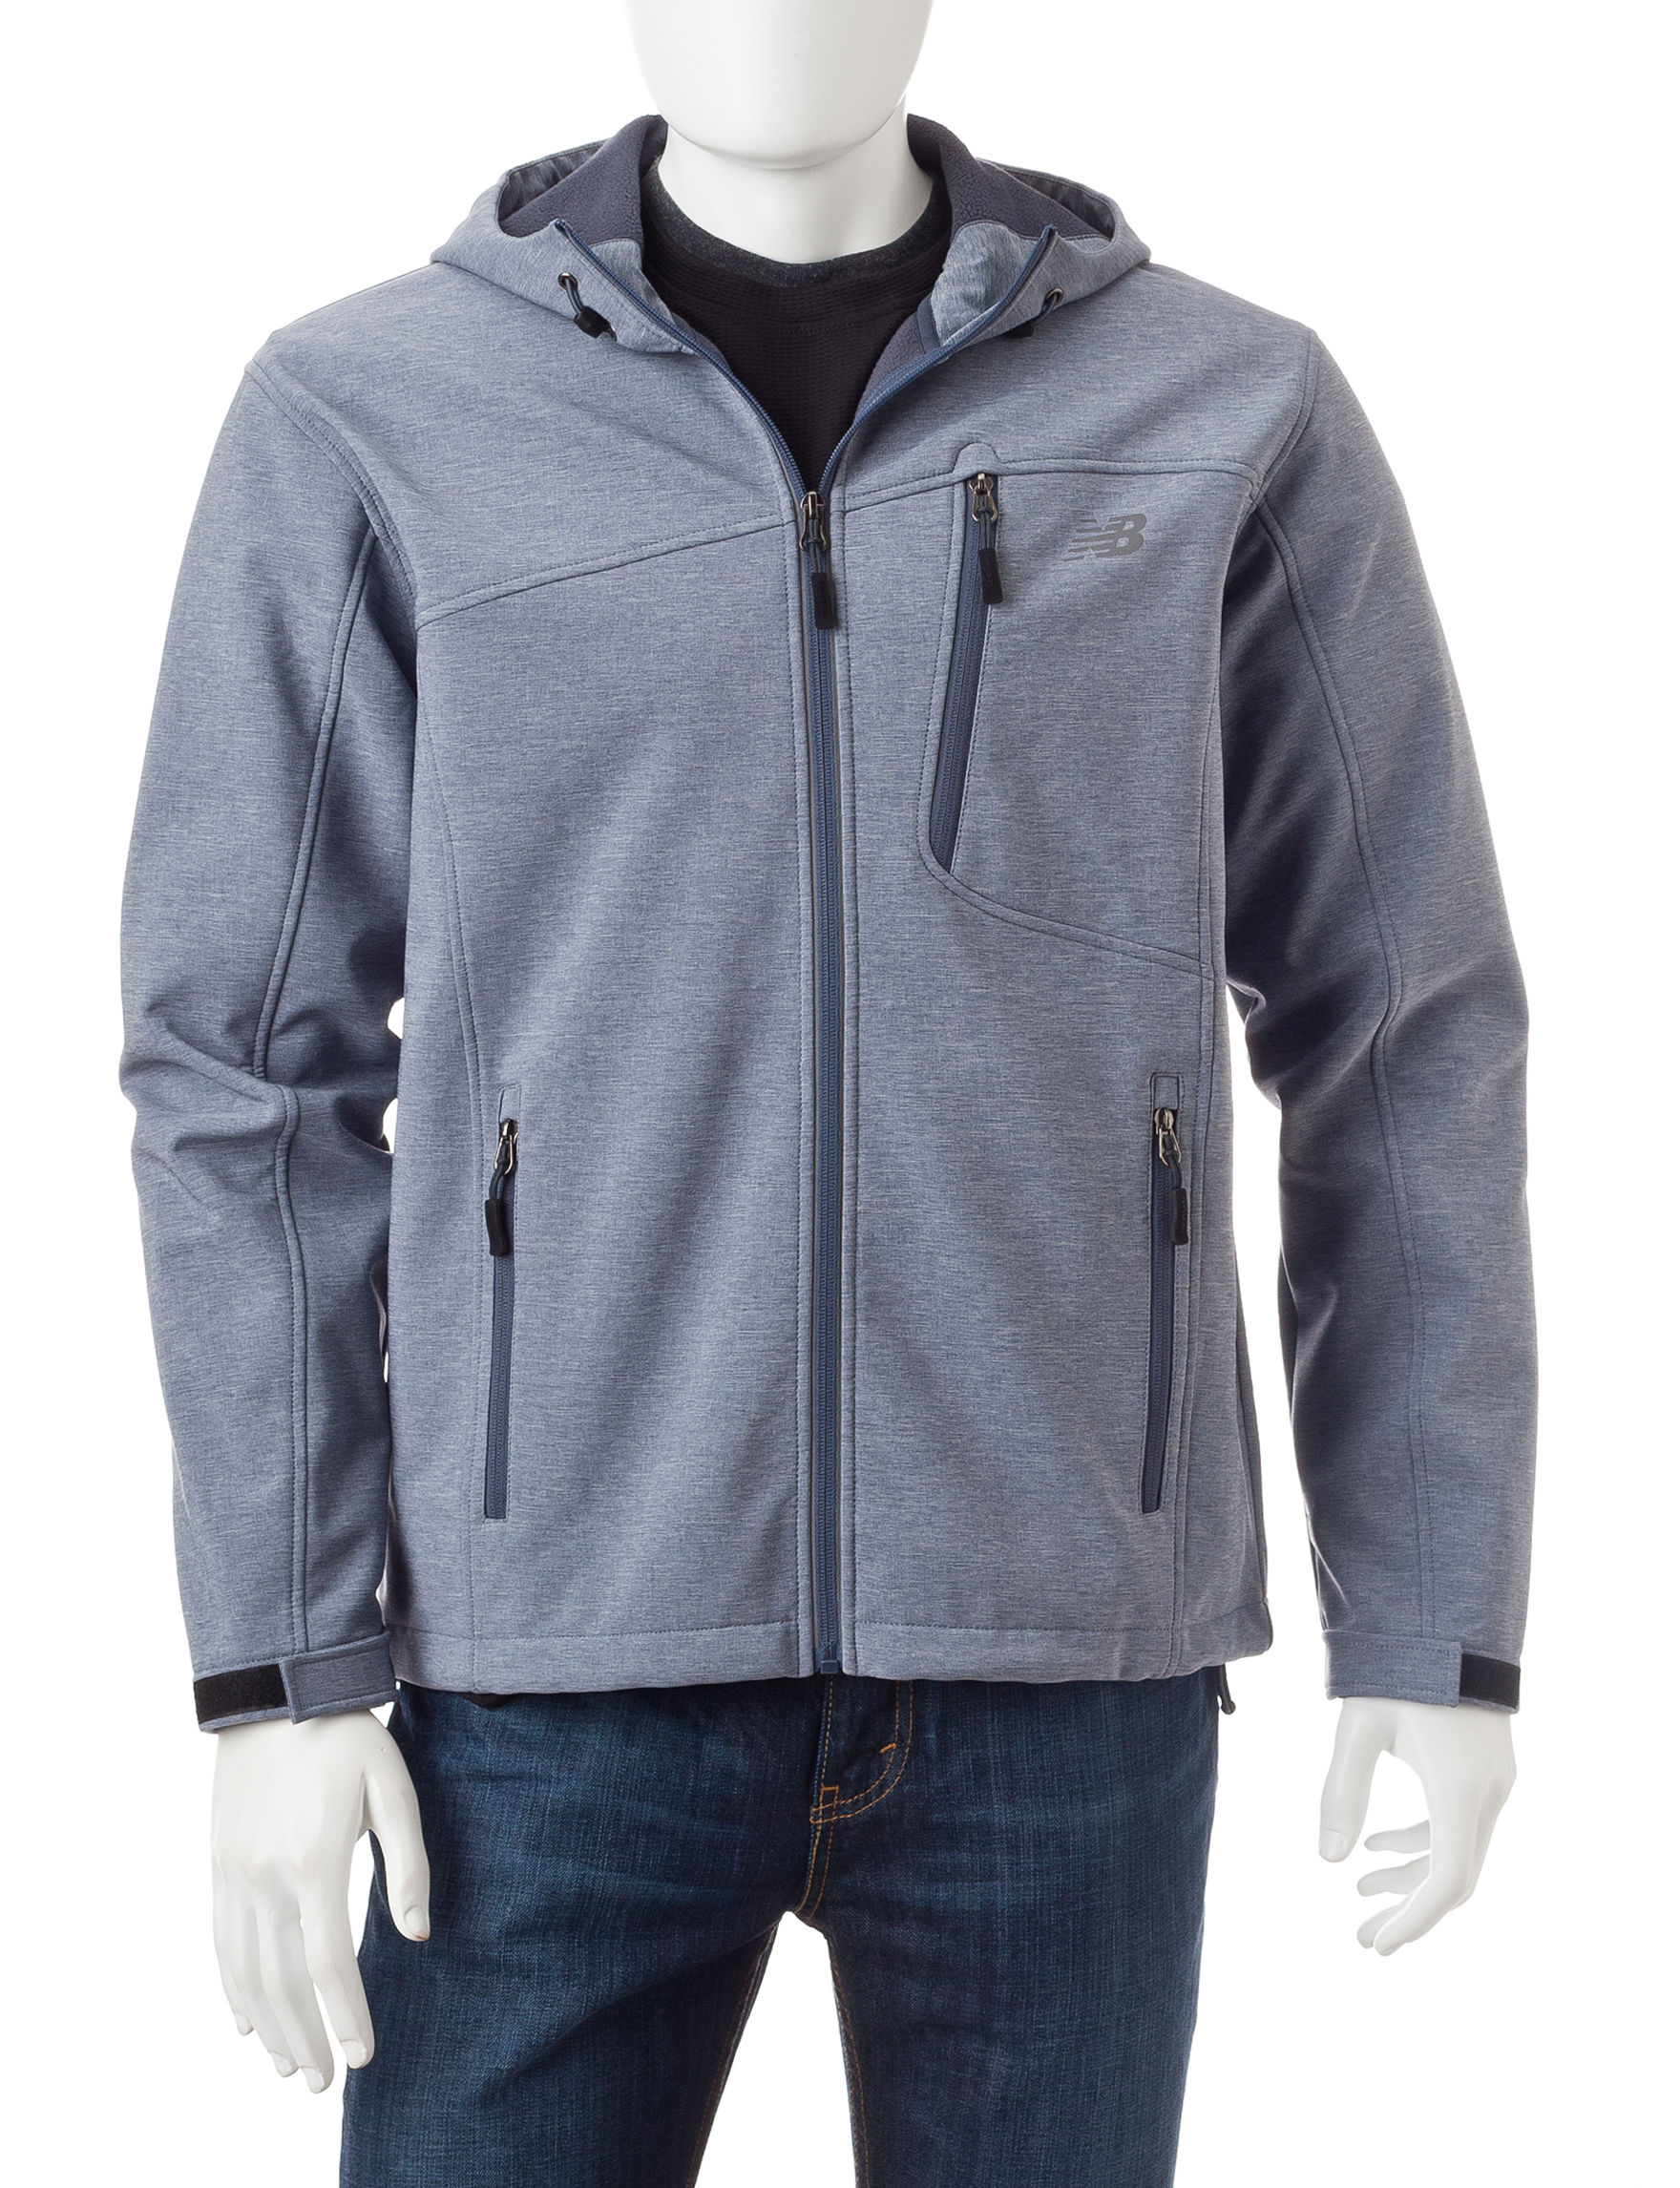 New Balance Light Grey Fleece & Soft Shell Jackets